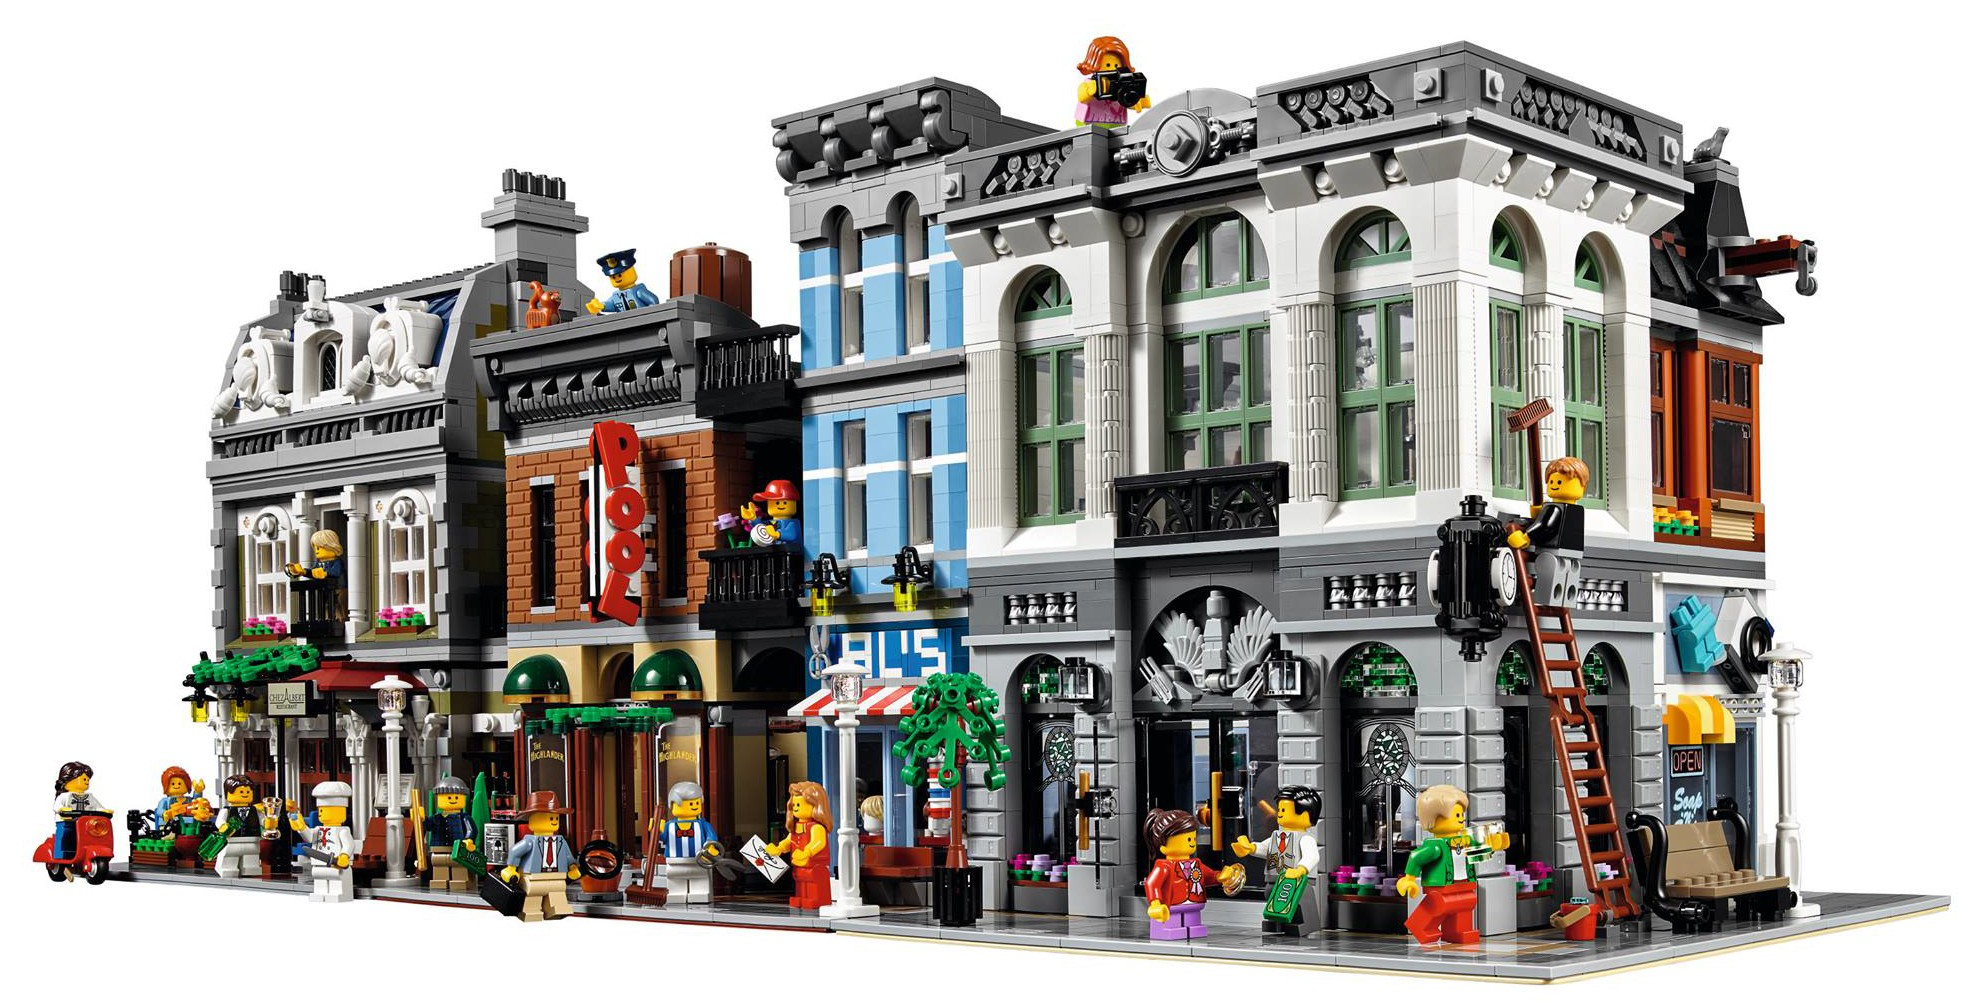 LEGO Brick Bank 10251 Modular Building Up for Order    Bricks and Bloks LEGO Modular Buildings on Street Together with Brick Bank